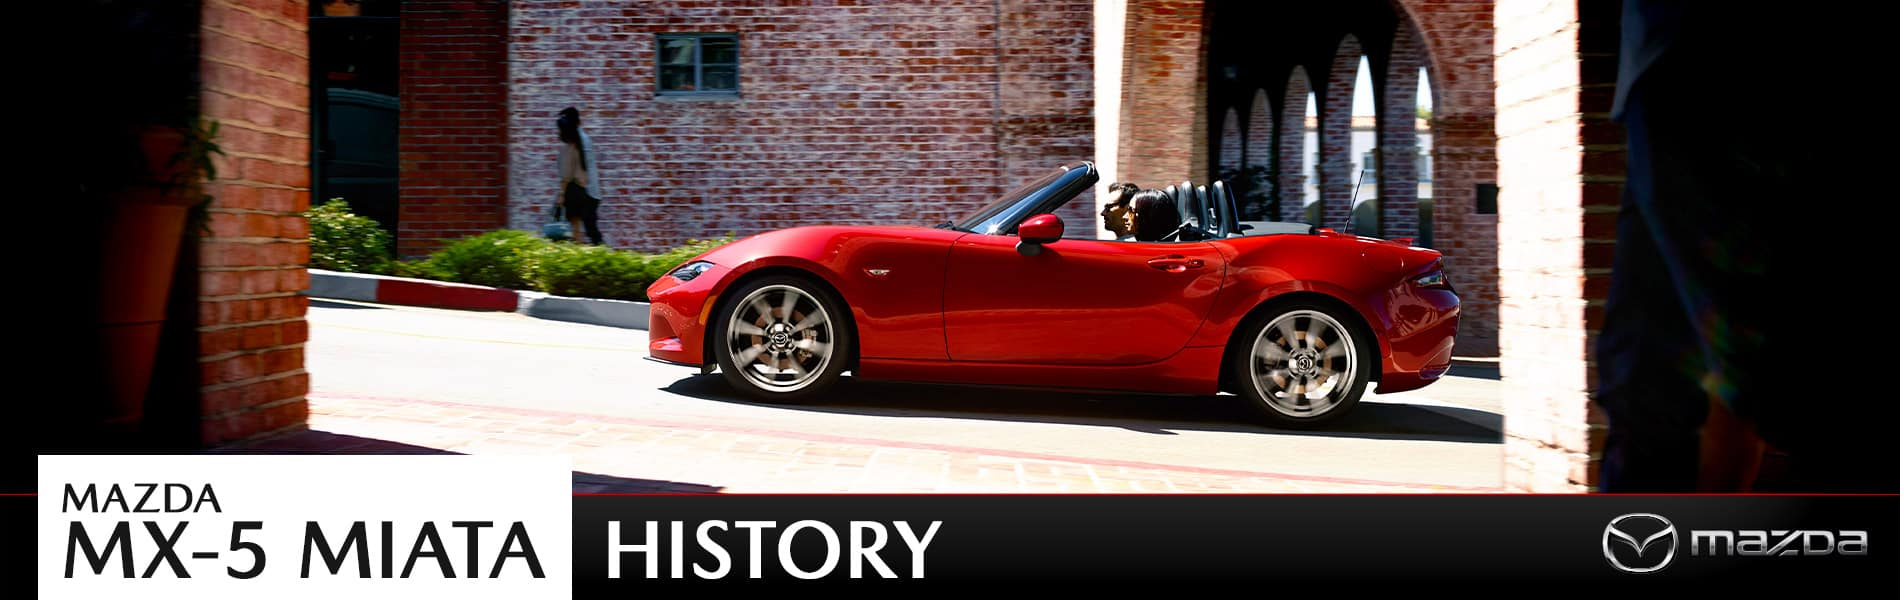 Learn more about the history of the ever-popular Mazda MX-5 Miata, then test drive yours at Mazda of Bedford in Ohio